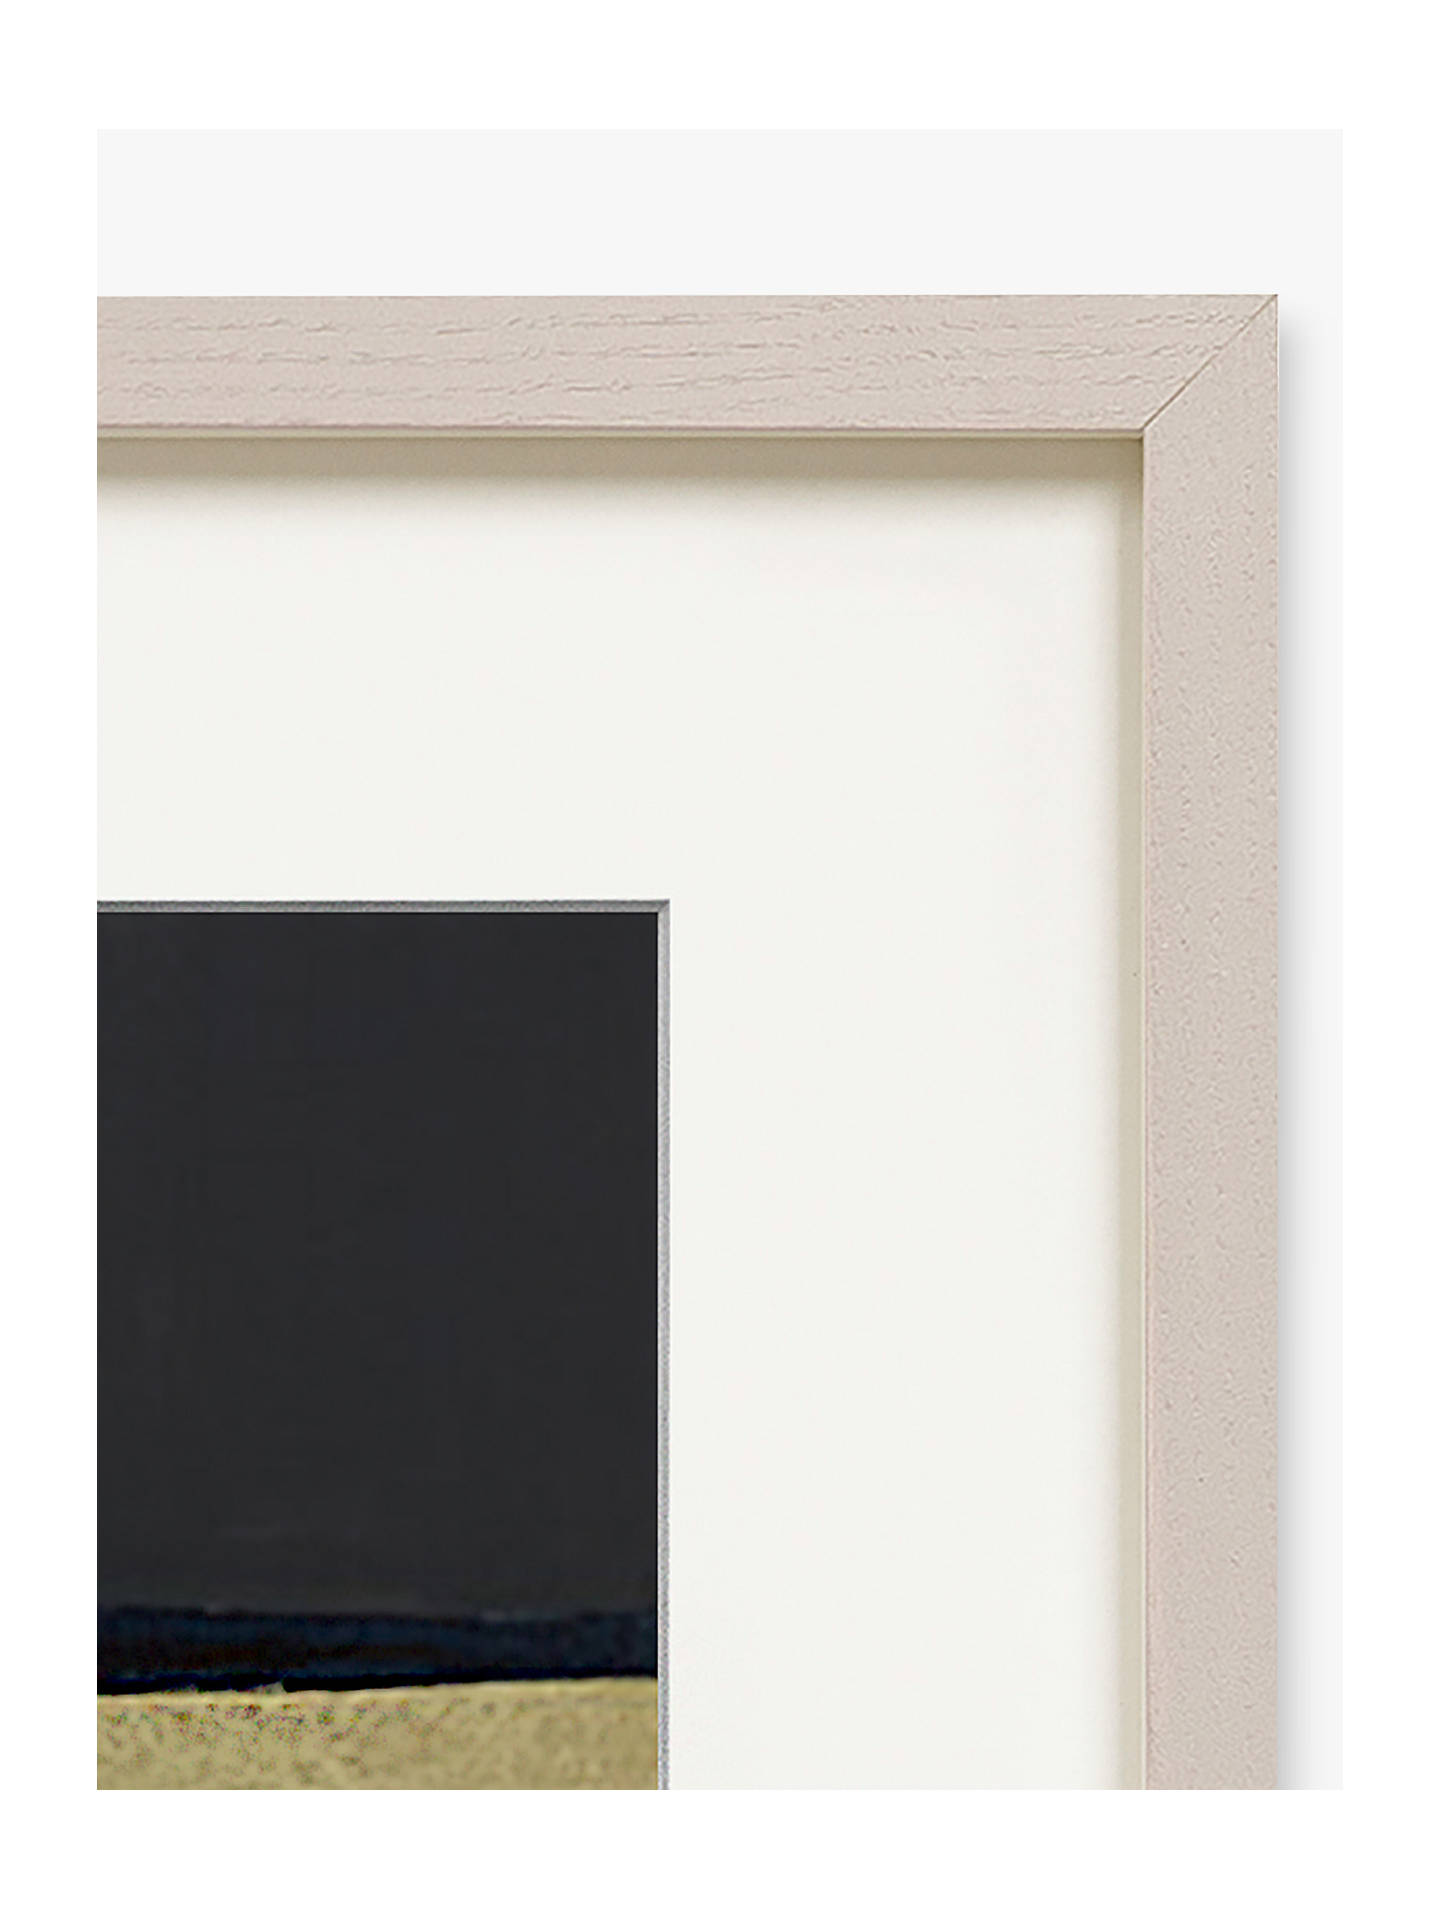 BuyRon Lawson - Wandering Sheep Framed Print, 23 x 92cm Online at johnlewis.com